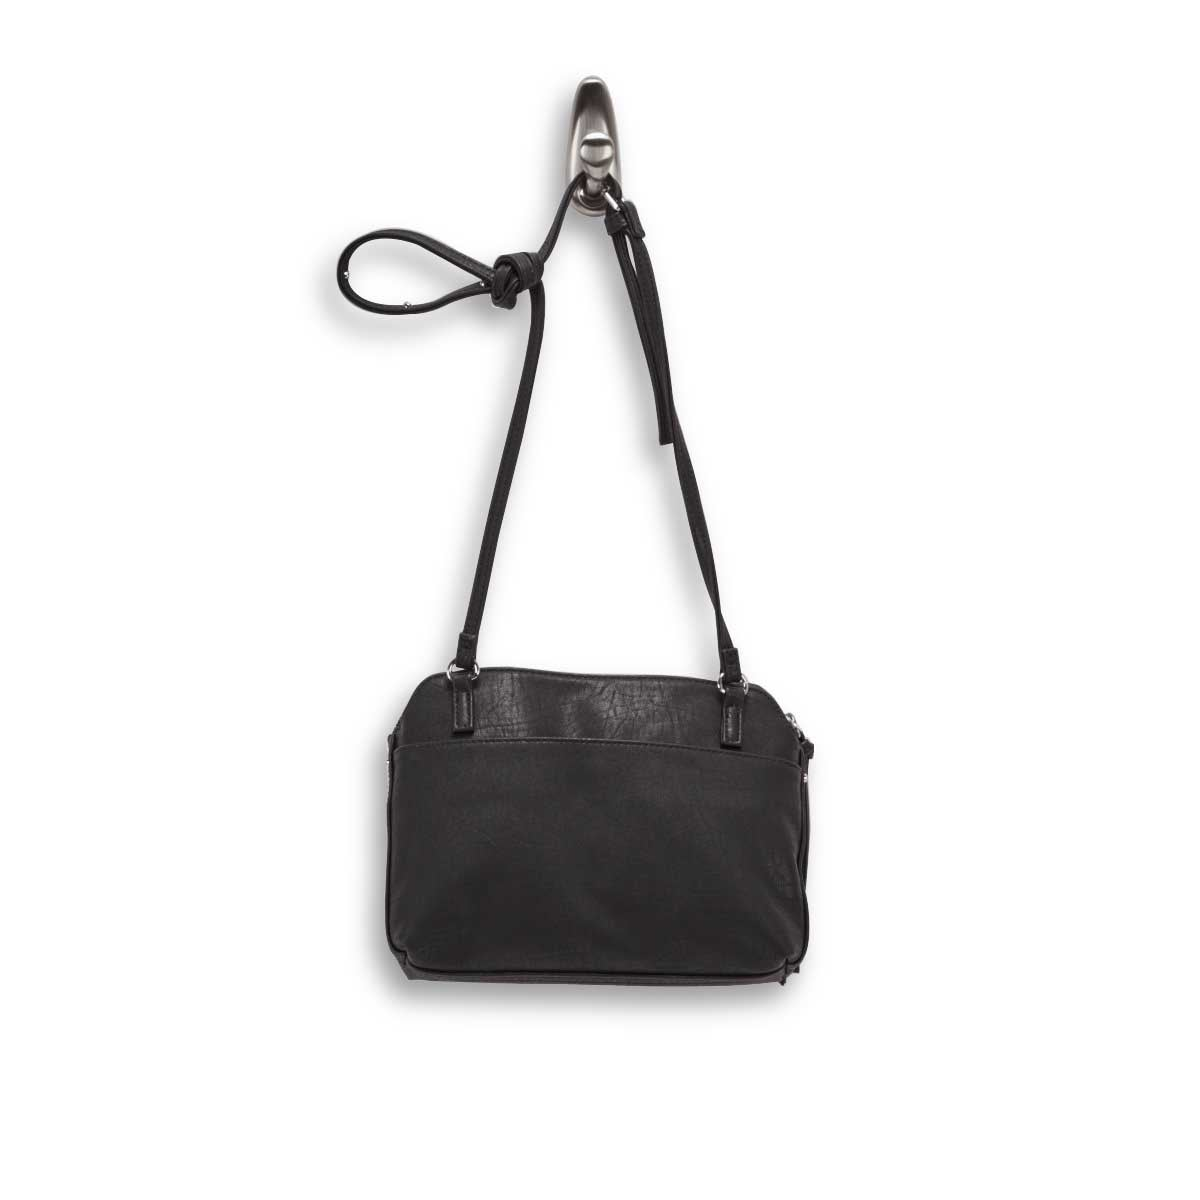 Lds black top zip cross body bag